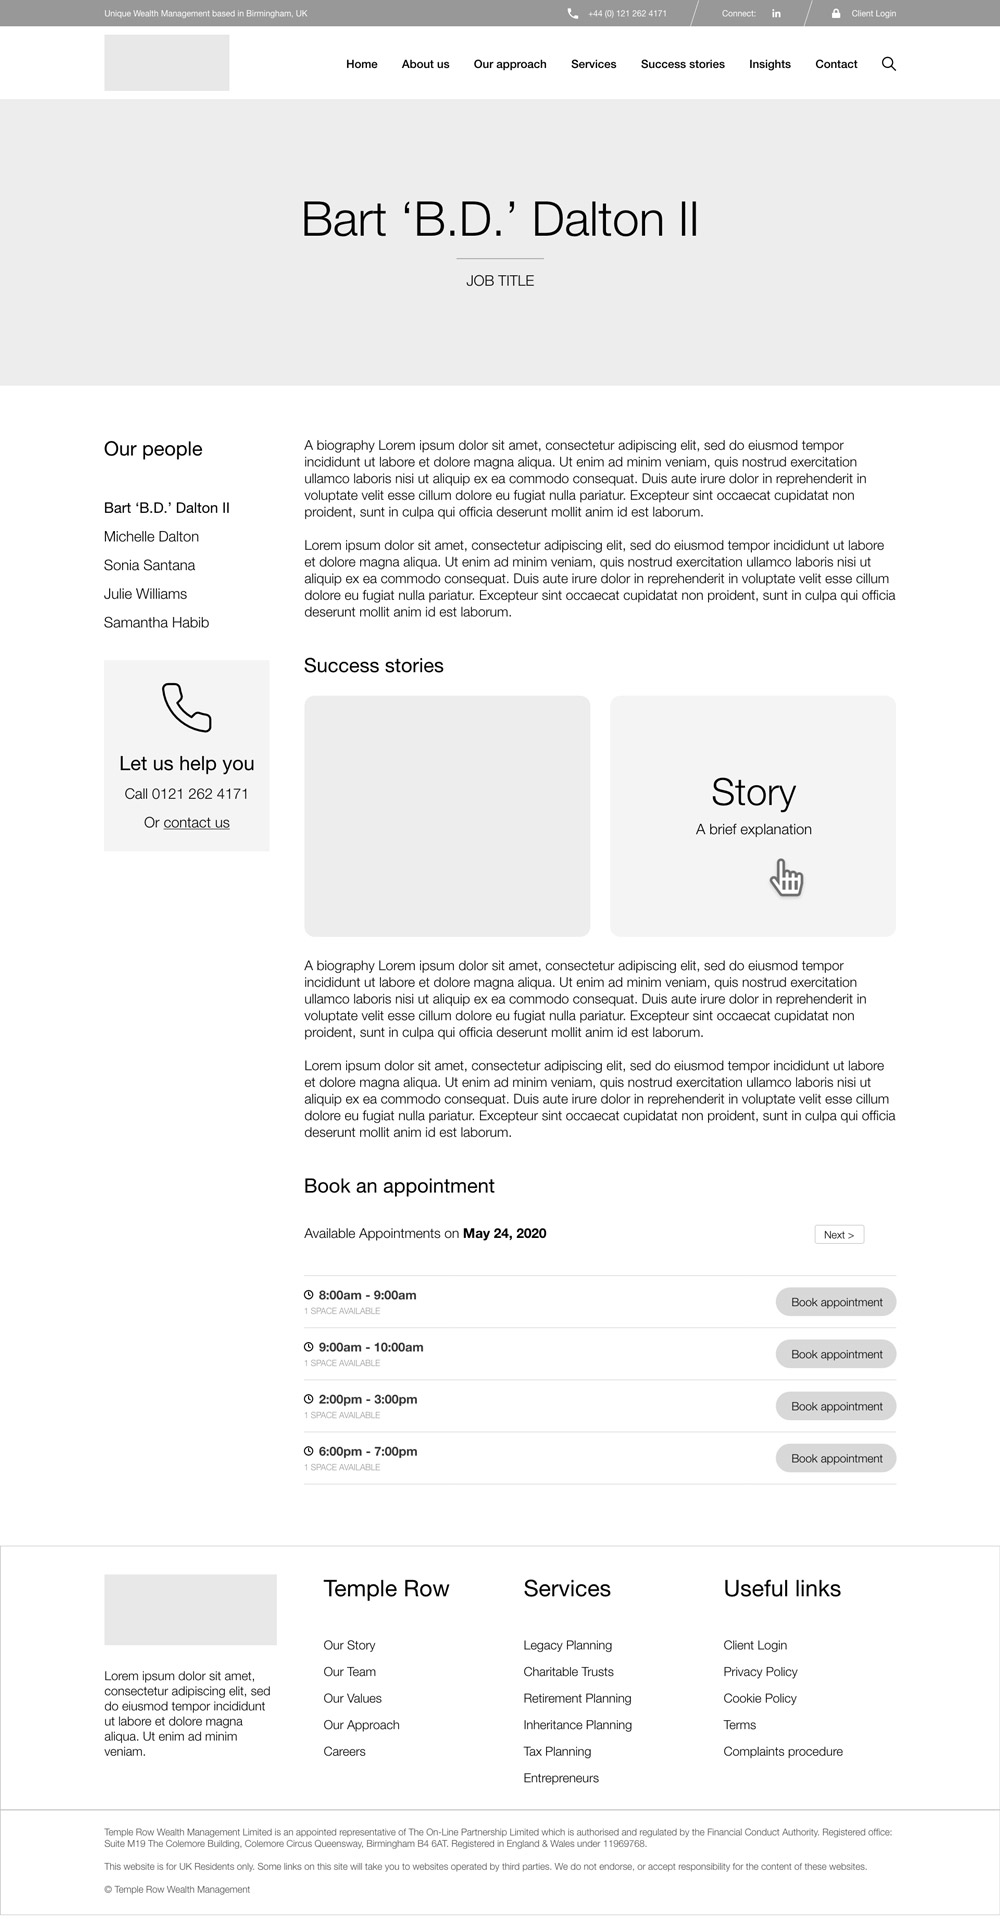 noble-digital-casestudy-temple-row-wealth-management-wireframe-5-staff